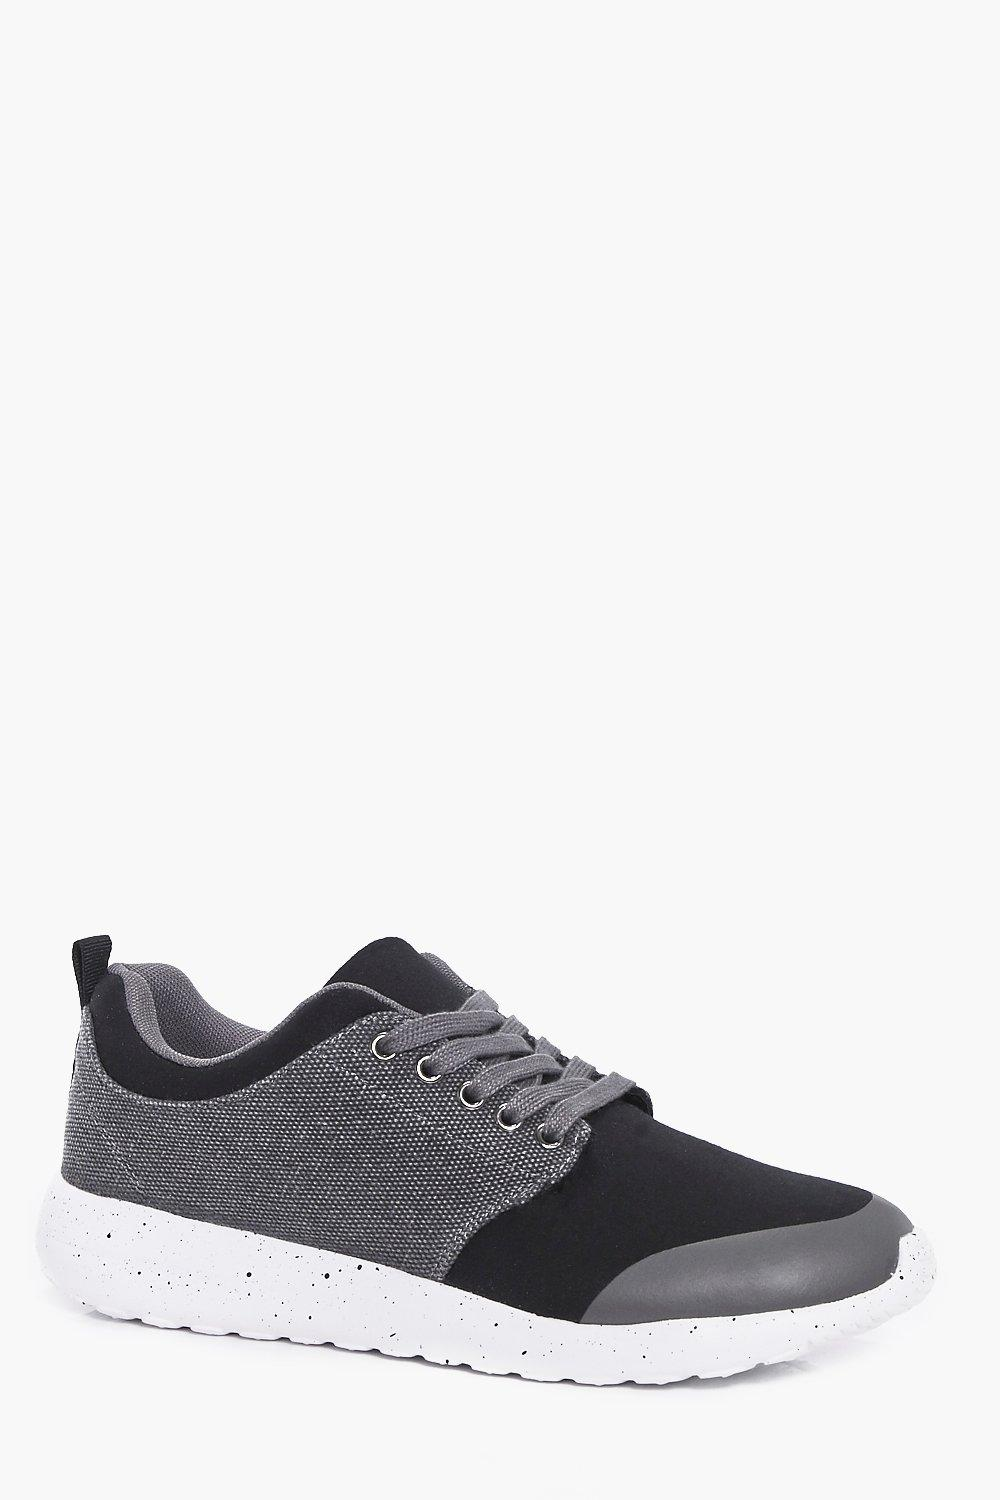 Product photo of Up running trainers with speckled sole black